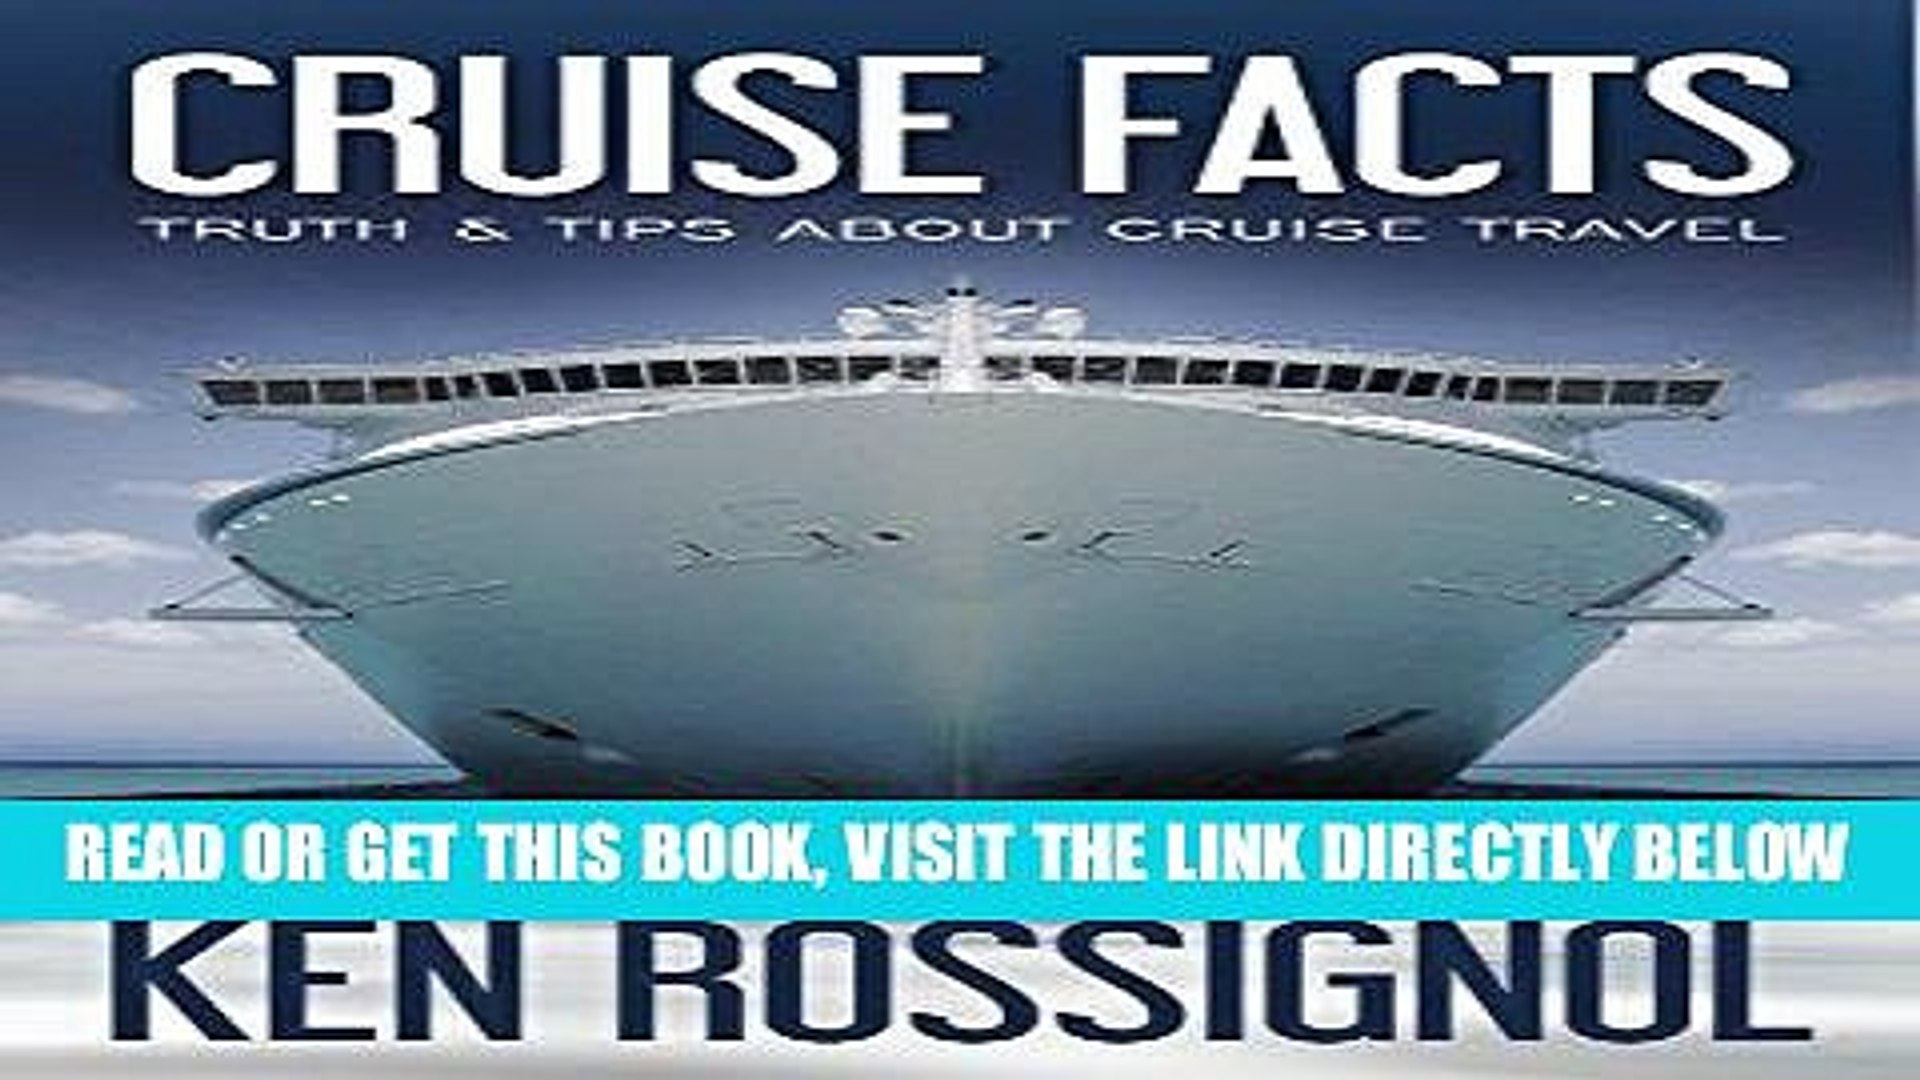 [READ] EBOOK CRUISE FACTS - TRUTH   TIPS ABOUT CRUISE TRAVEL (Traveling Cheapskate Series Book 2)